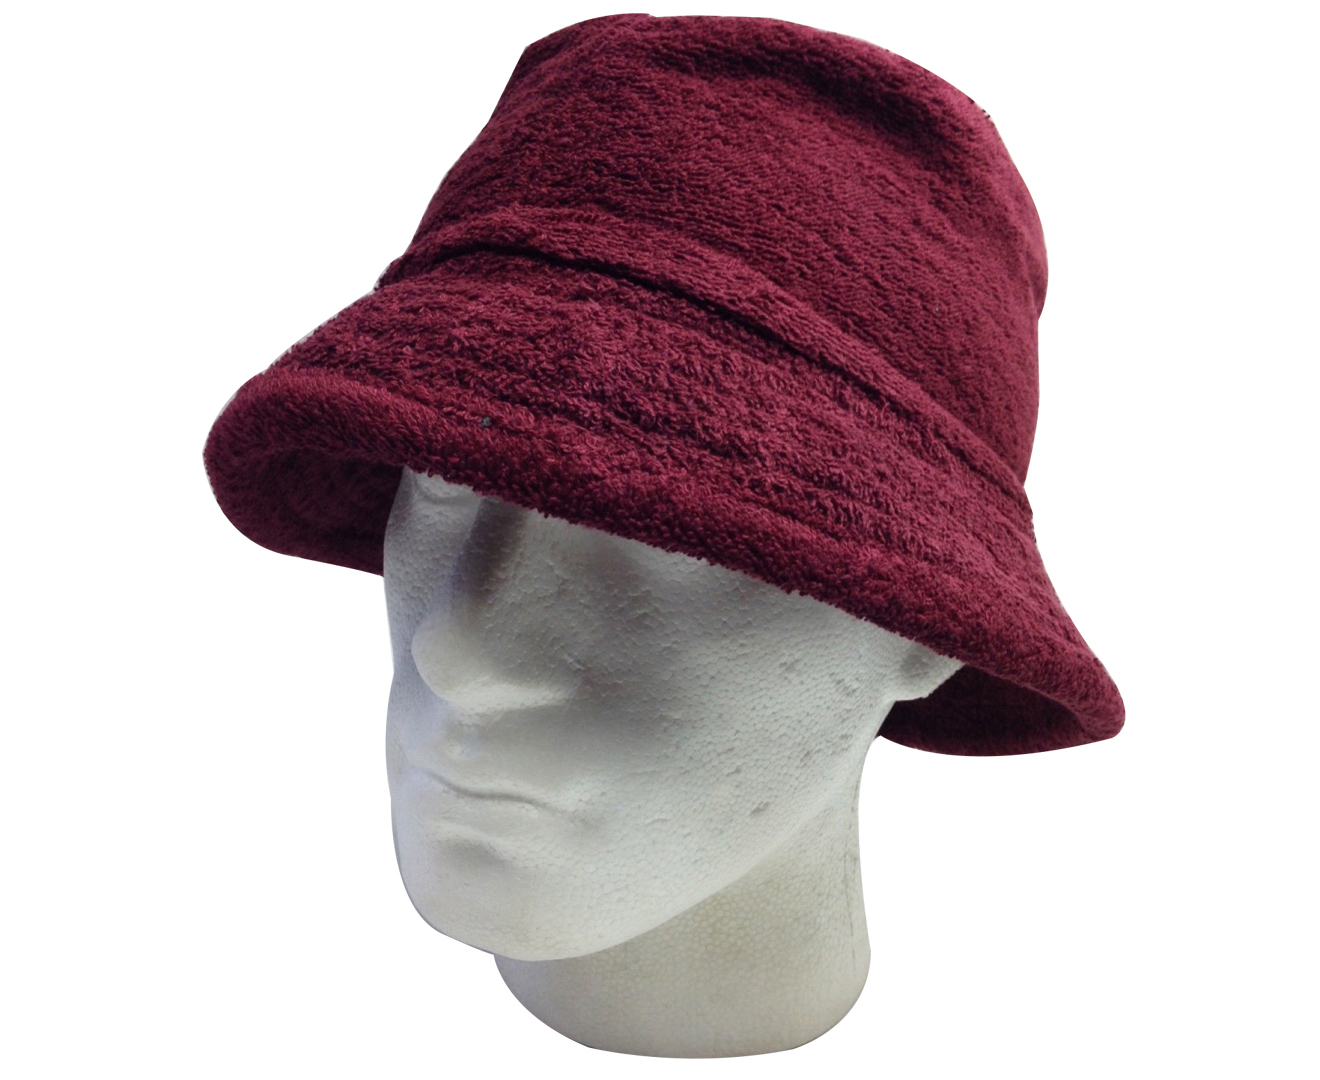 Terry-Towelling-BUCKET-HAT-Daggy-Fishing-Camping-Lad-Cap-Retro-New-100-COTTON thumbnail 31